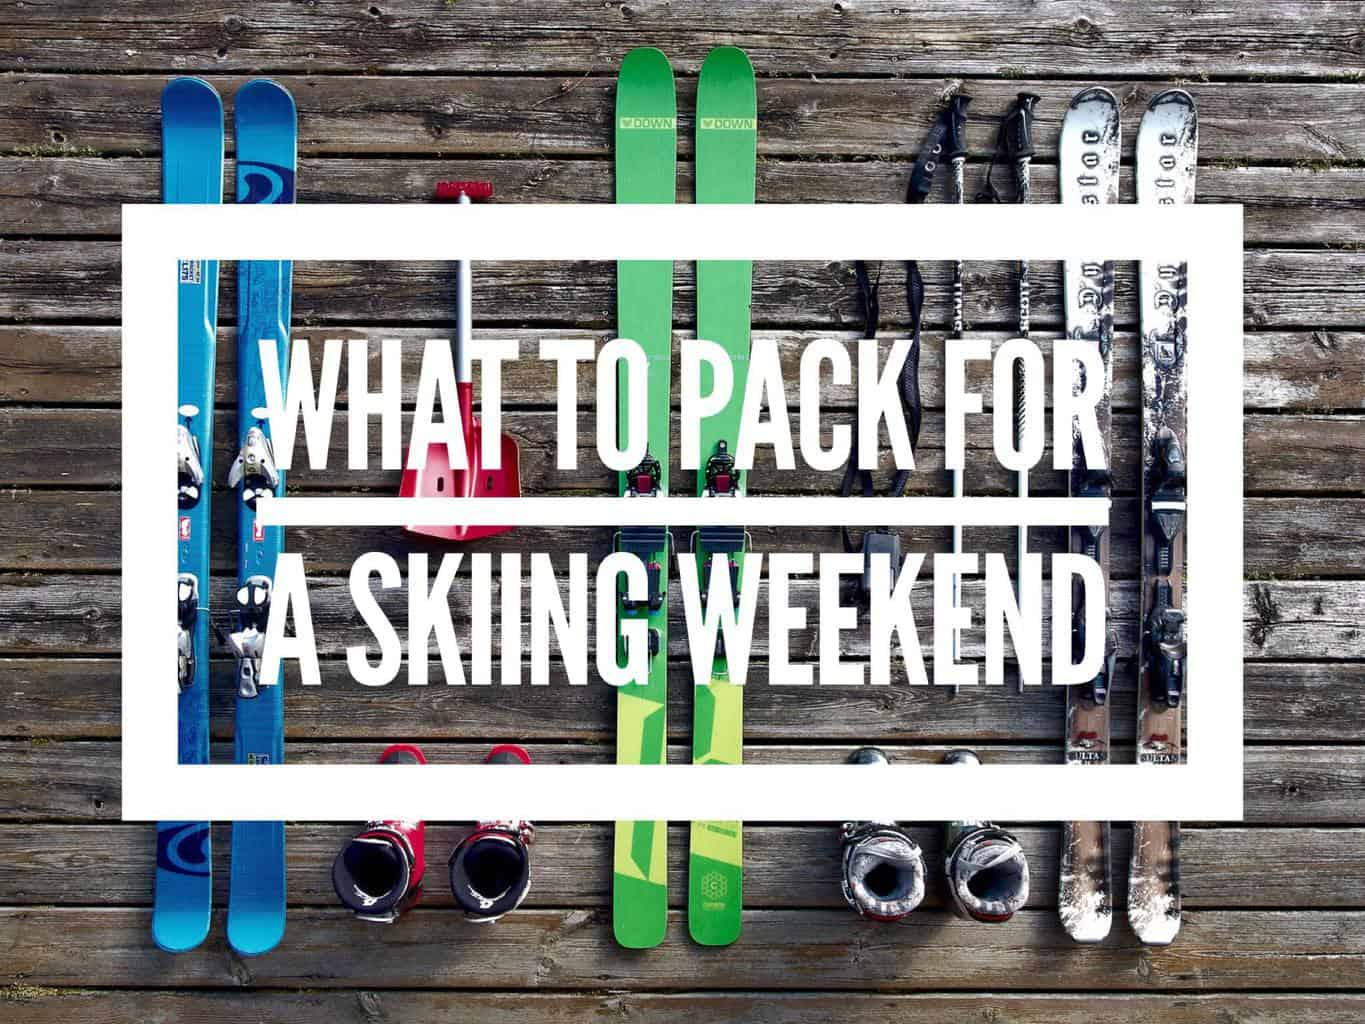 WHAT TO PACK FOR A SKIING WEEKEND